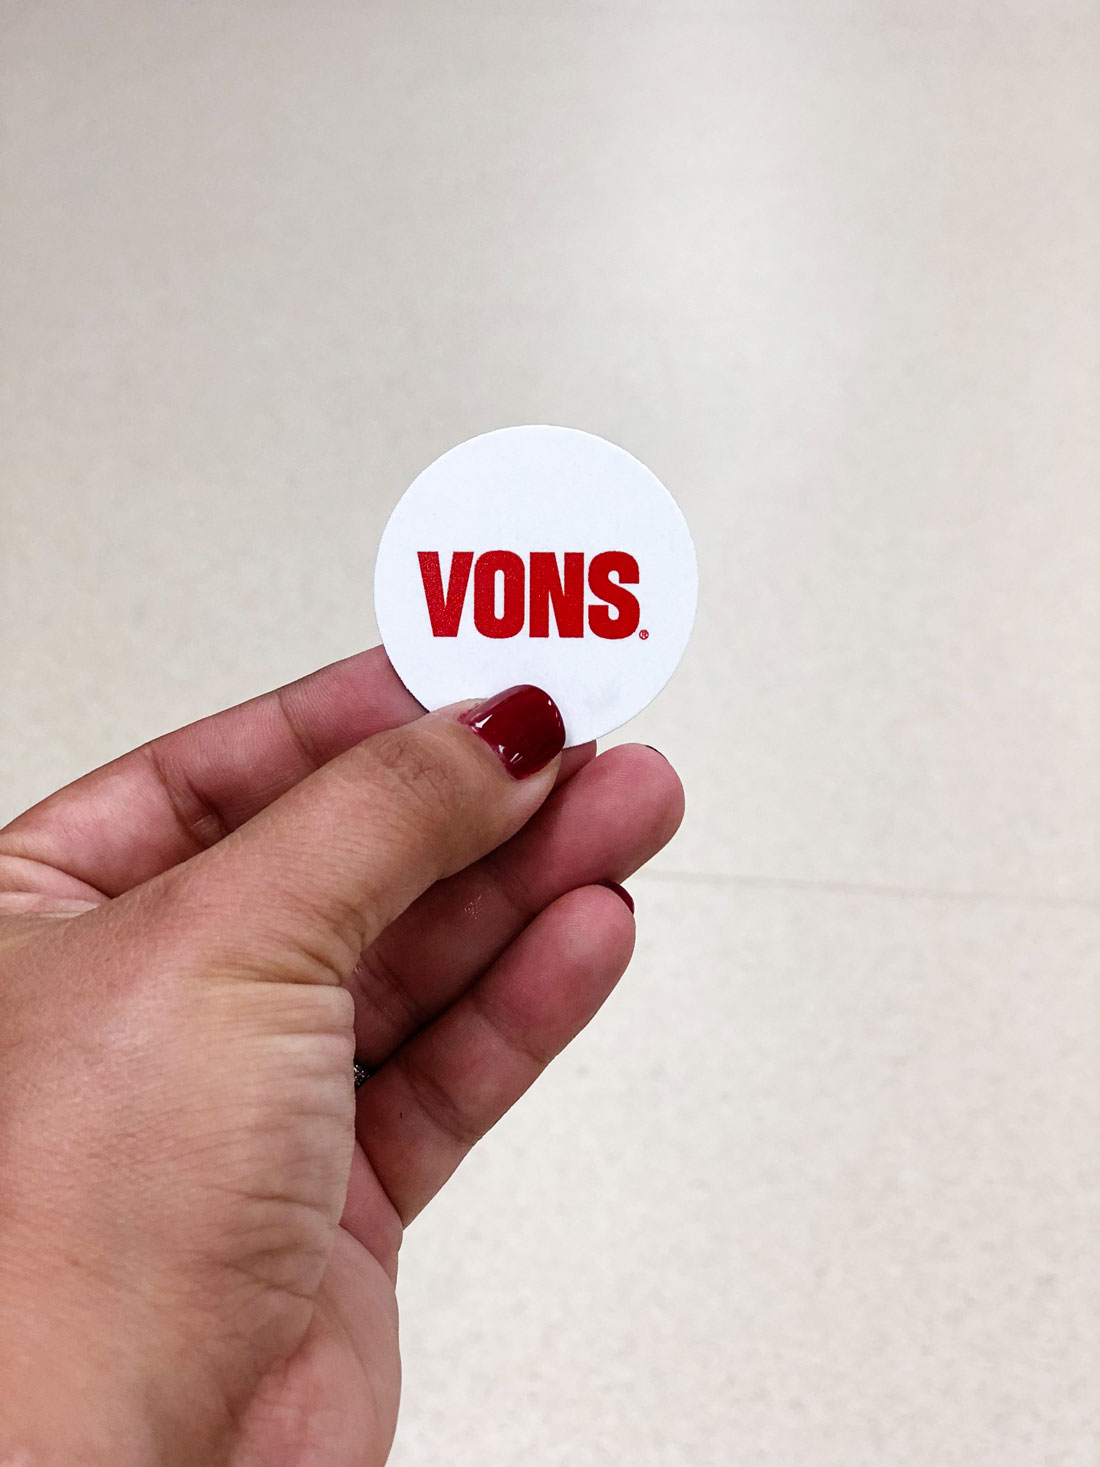 In partnership with Vons Grocery Stores